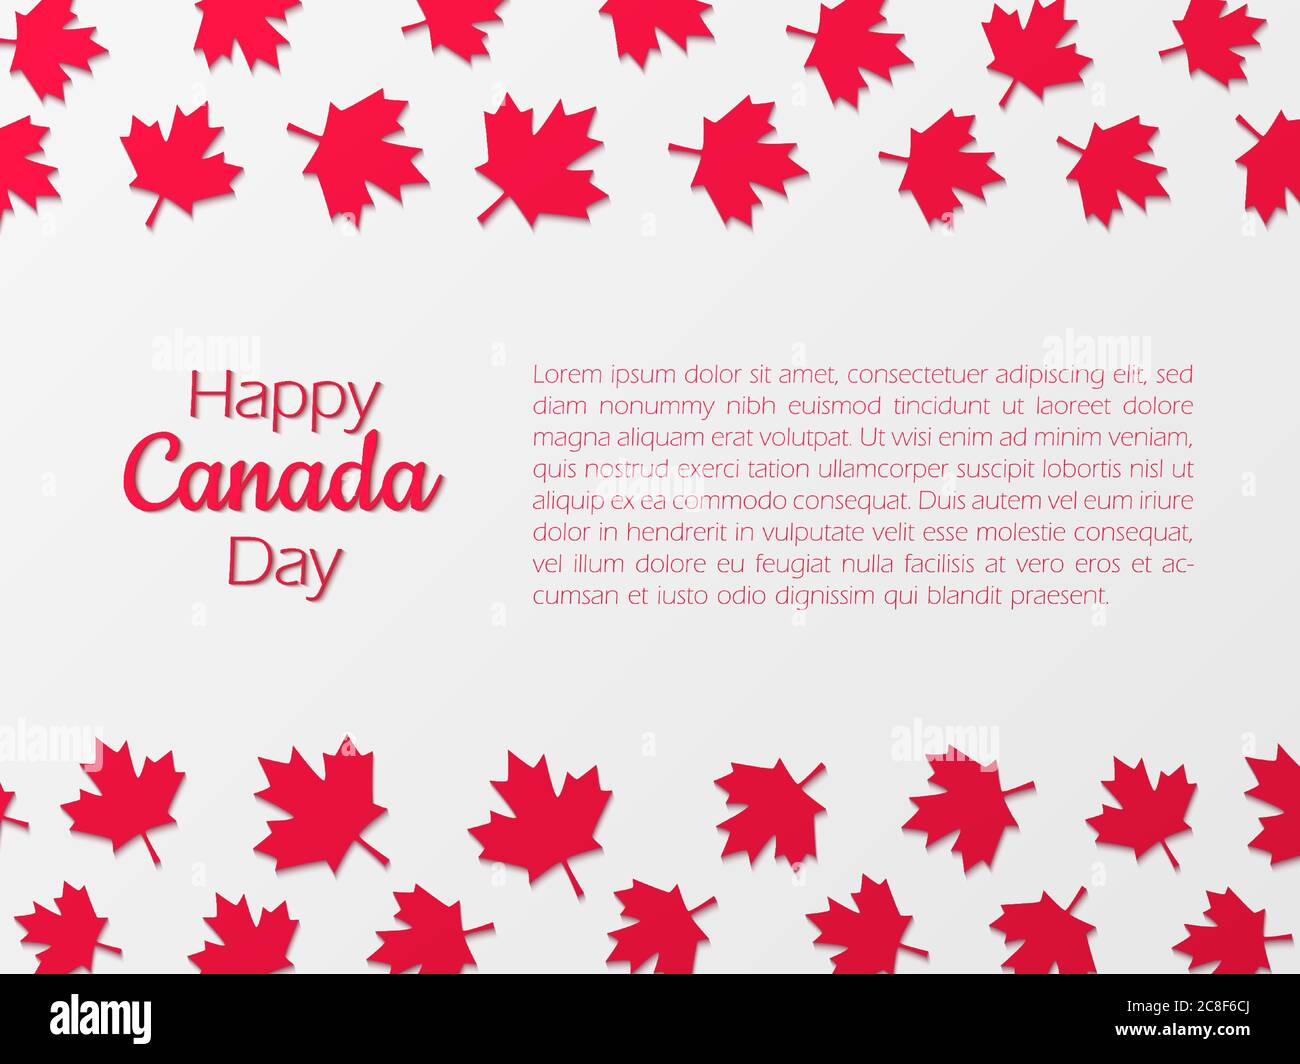 Happy Canada Day Background With Paper Cut Maple Leaves Stock Vector Image Art Alamy